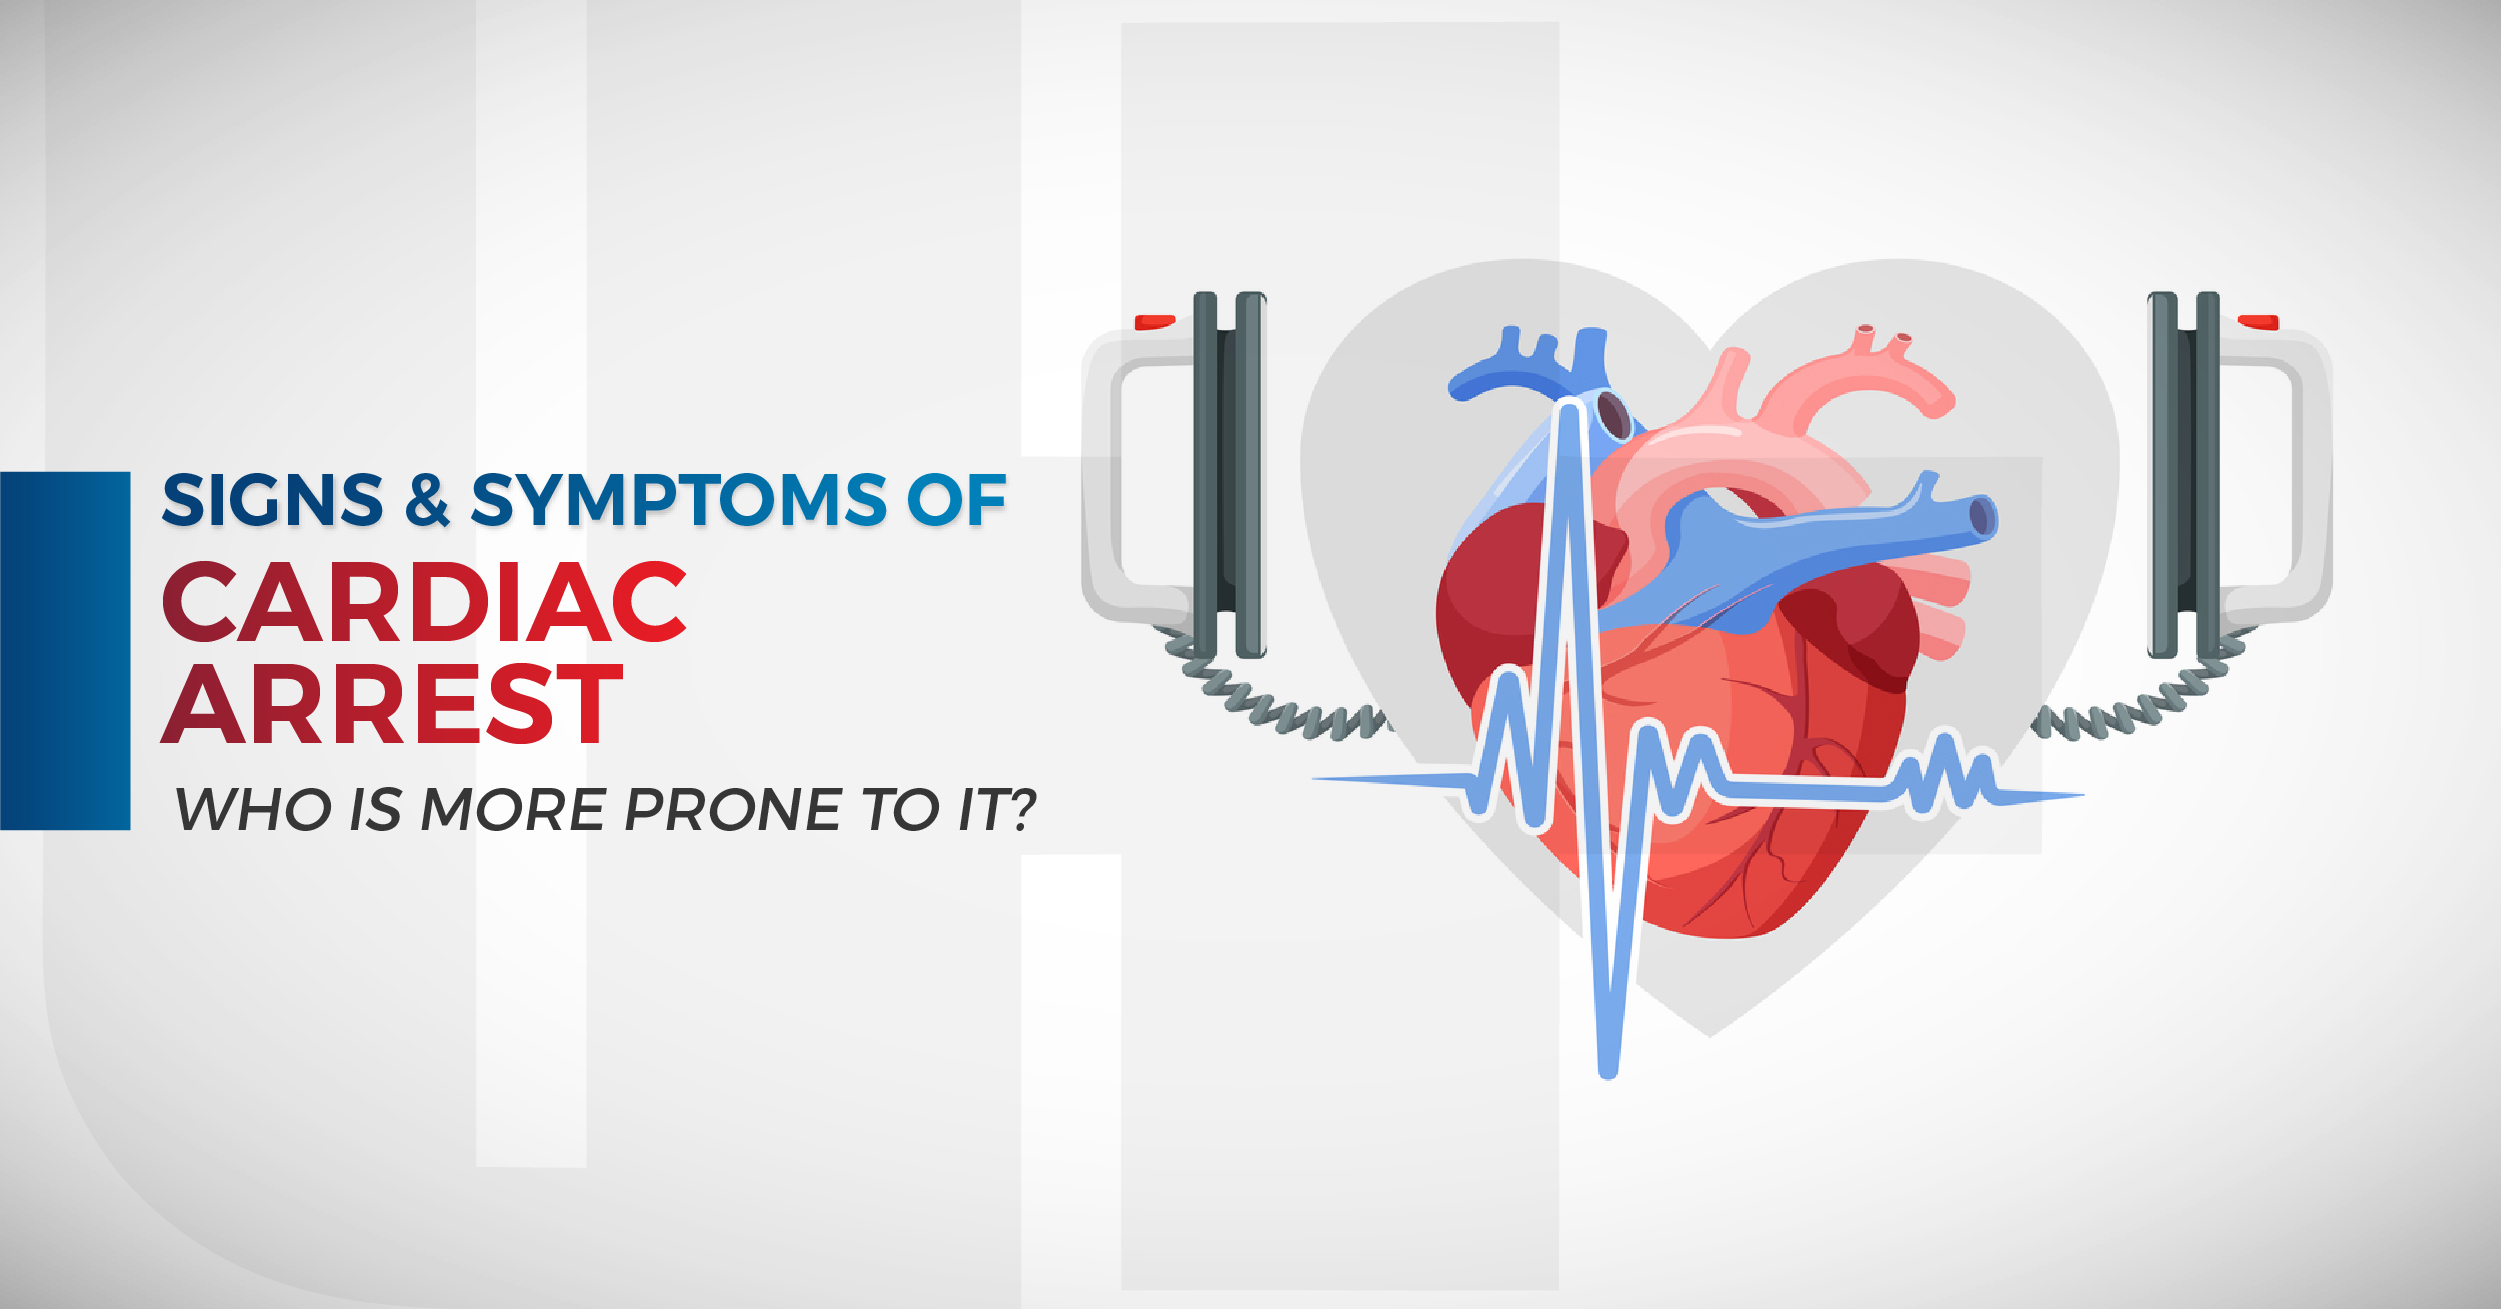 Signs & Symptoms of Cardiac Arrest